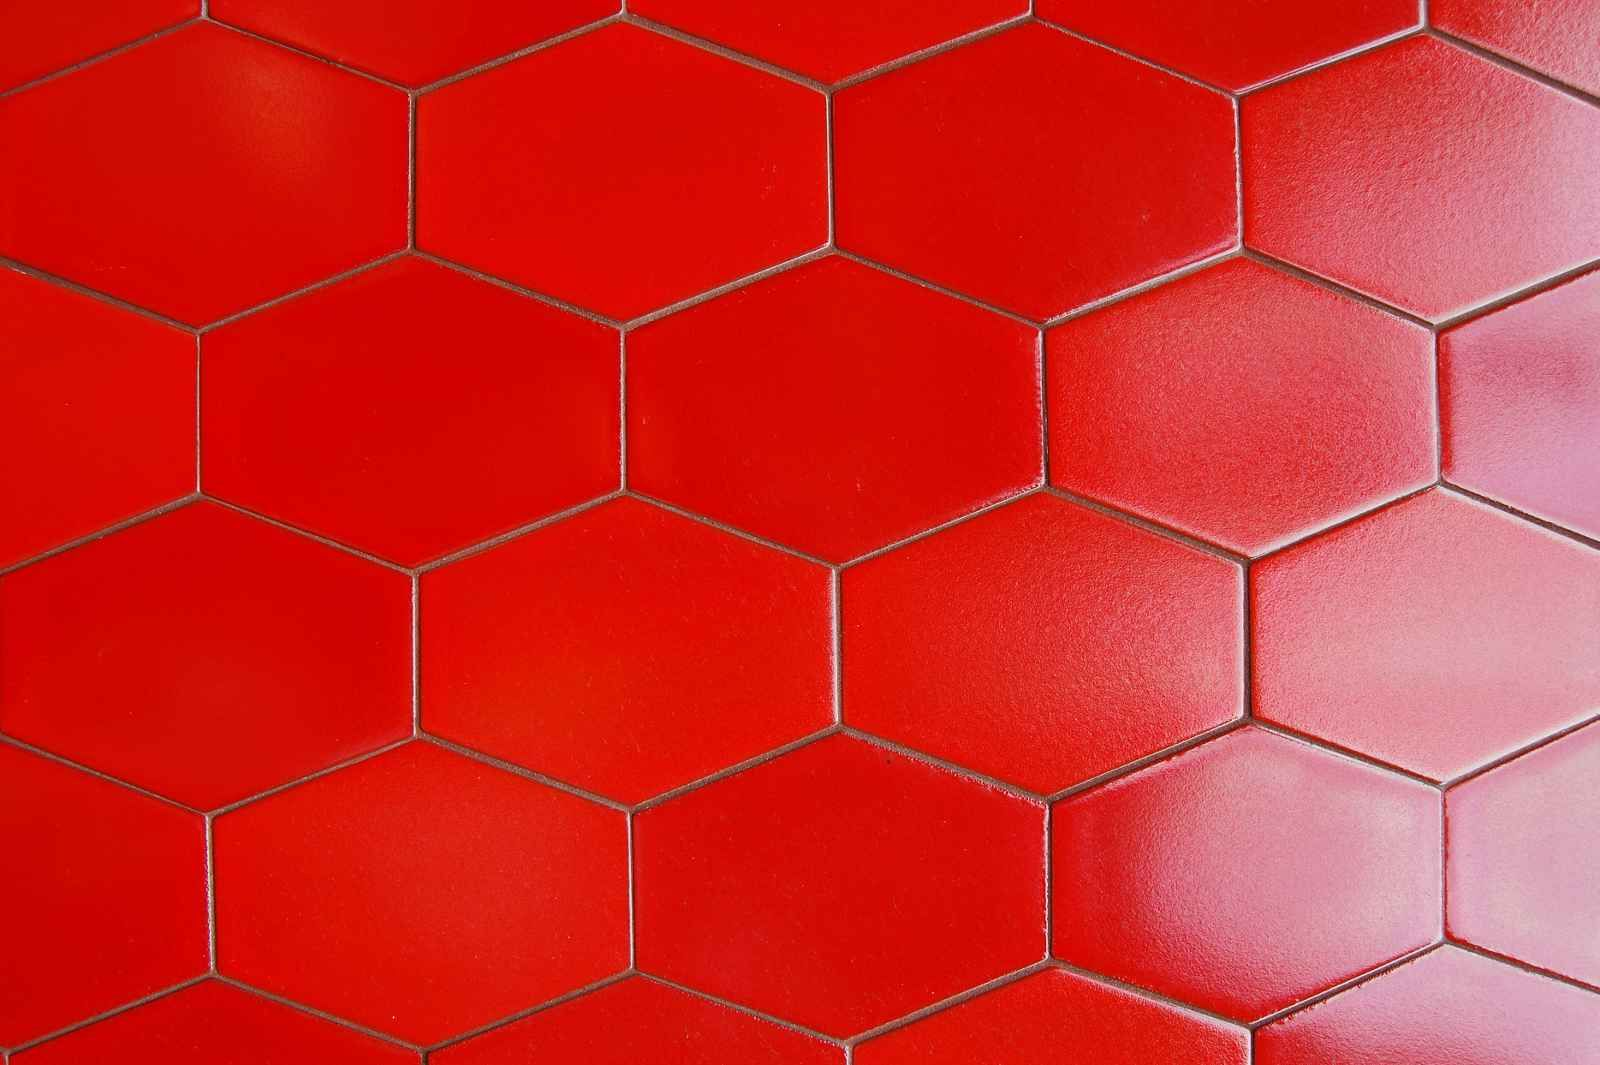 Inspiring Red Ceramic Floor Tile 3 Tiles That Bright And Clean Feel